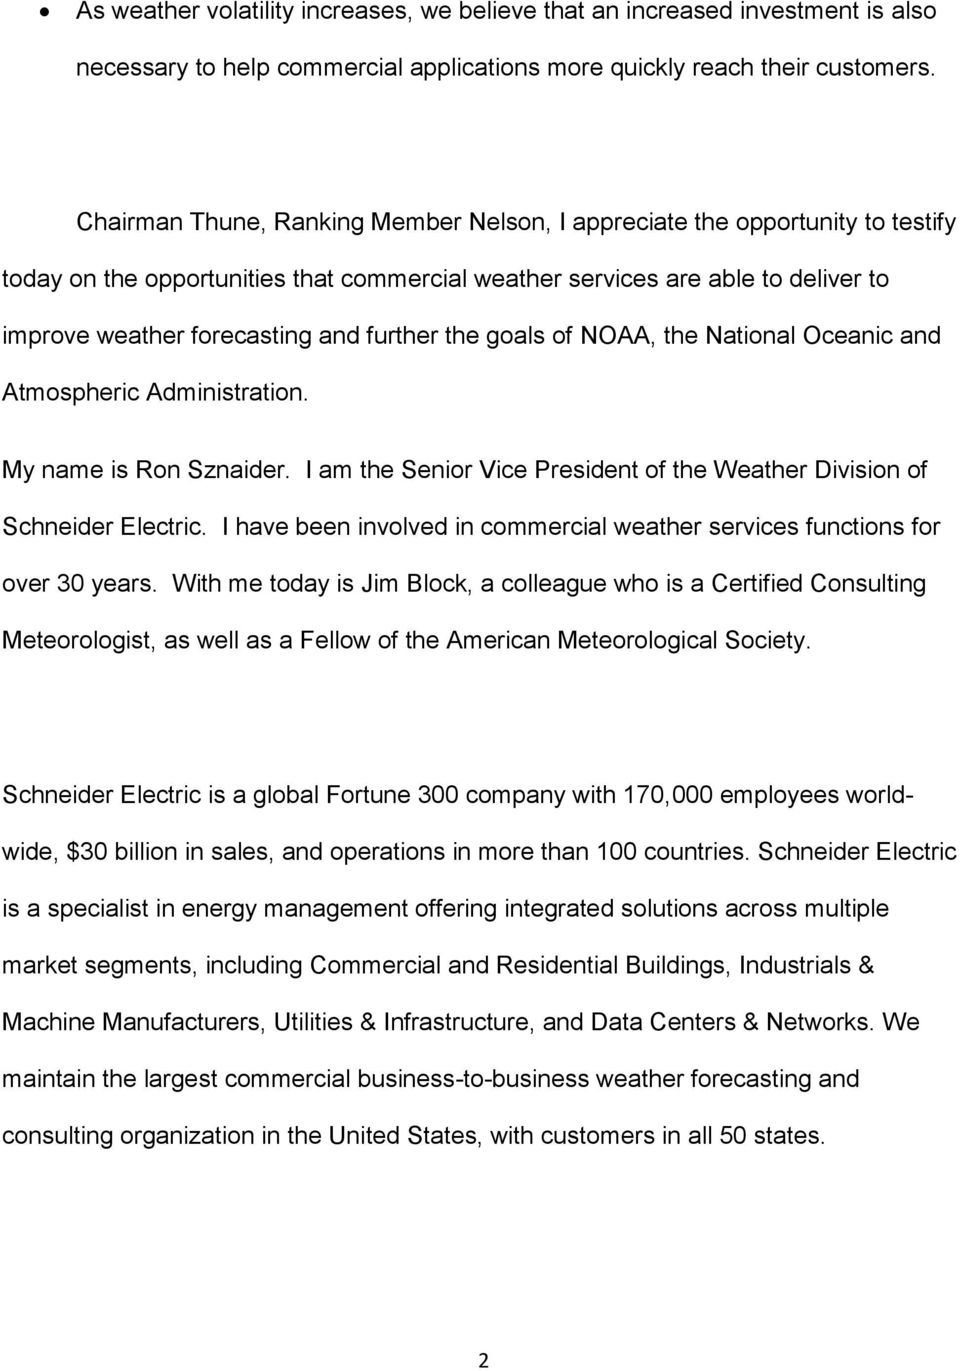 further the goals of NOAA, the National Oceanic and Atmospheric Administration. My name is Ron Sznaider. I am the Senior Vice President of the Weather Division of Schneider Electric.